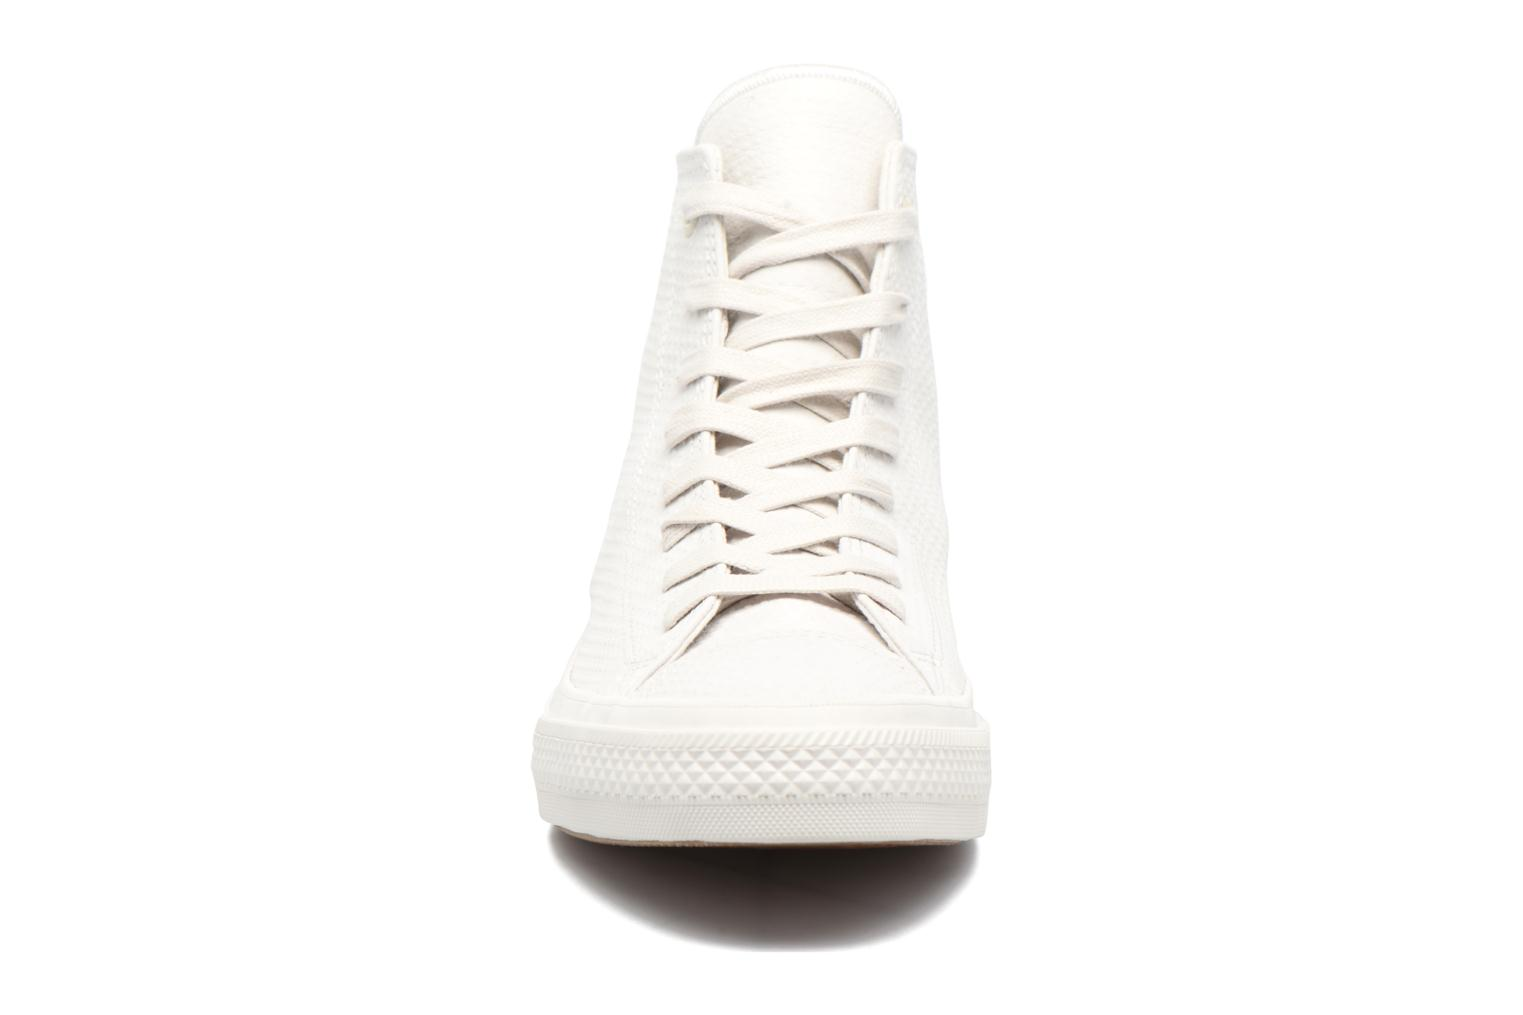 Converse Chuck Taylor All Star Ii Hi Lux Leather